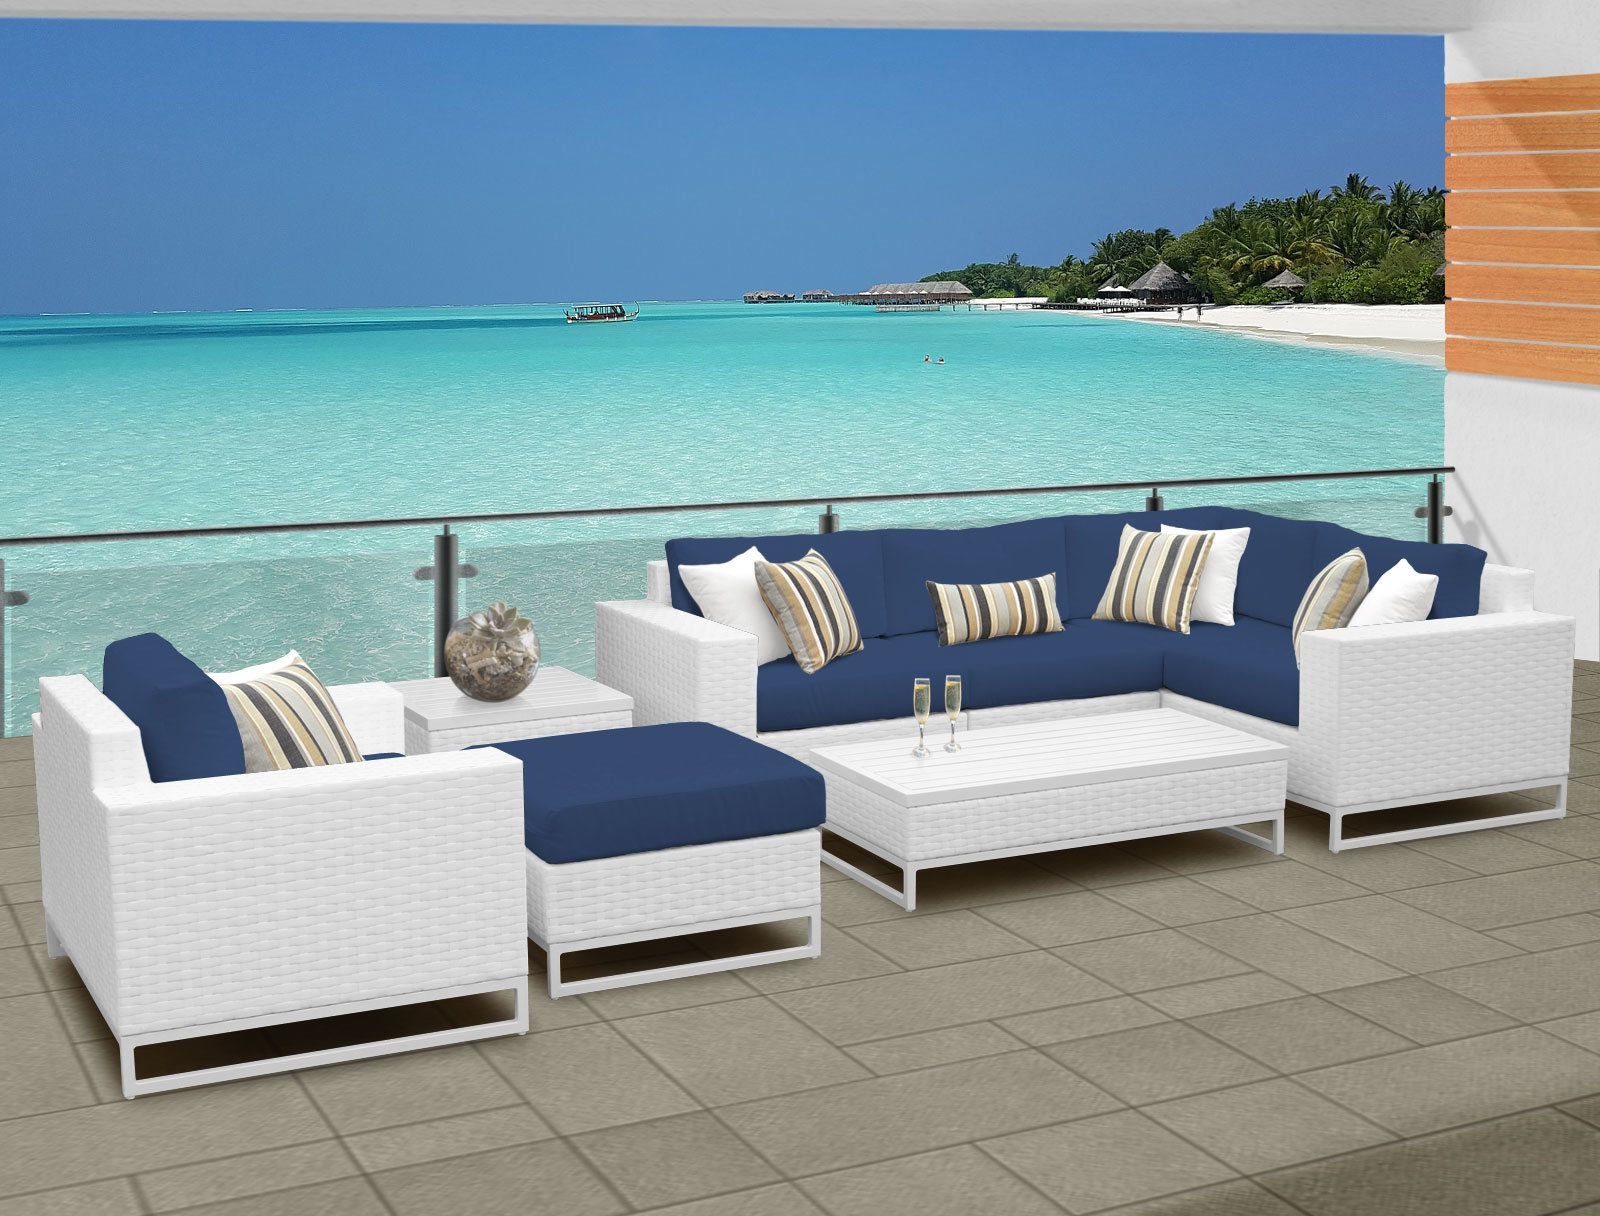 Popular Miami 8 Piece Sectional Seating Group With Cushions Throughout Menifee Patio Sofas With Cushions (View 6 of 25)